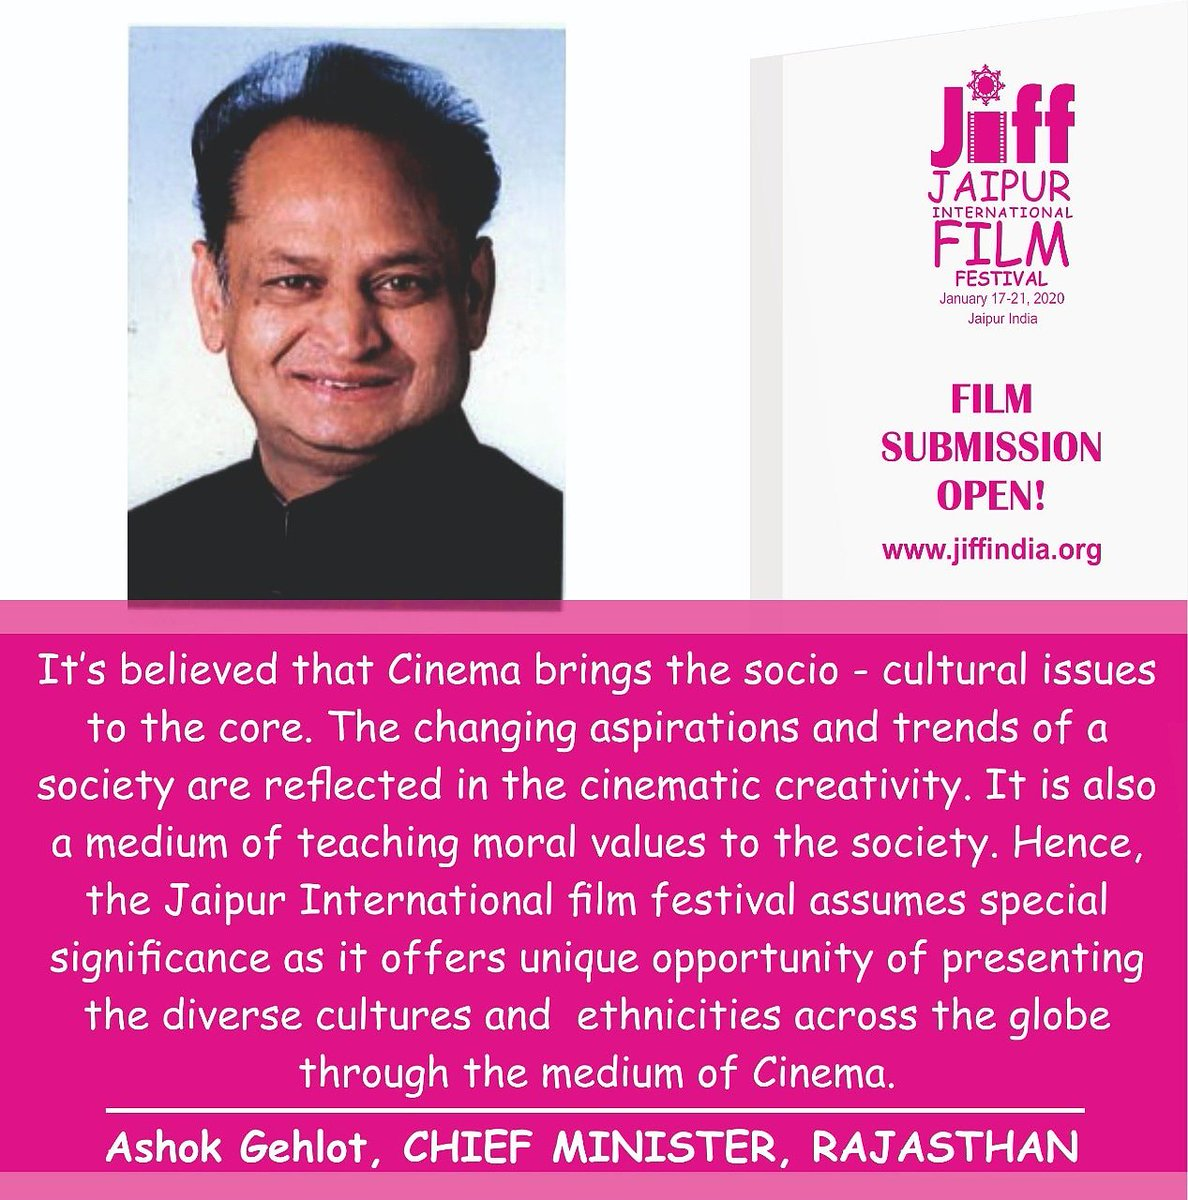 Throwback to JIFF2019 - For more details visit our website-  *http://www.jiffindia.org * #jaipur #jaipurfilmfestival #jaipurinternationalfilmfestival #Cannes2019 #CannesFilmFestival #Trend #TrendingNow #jiff #jiff2019